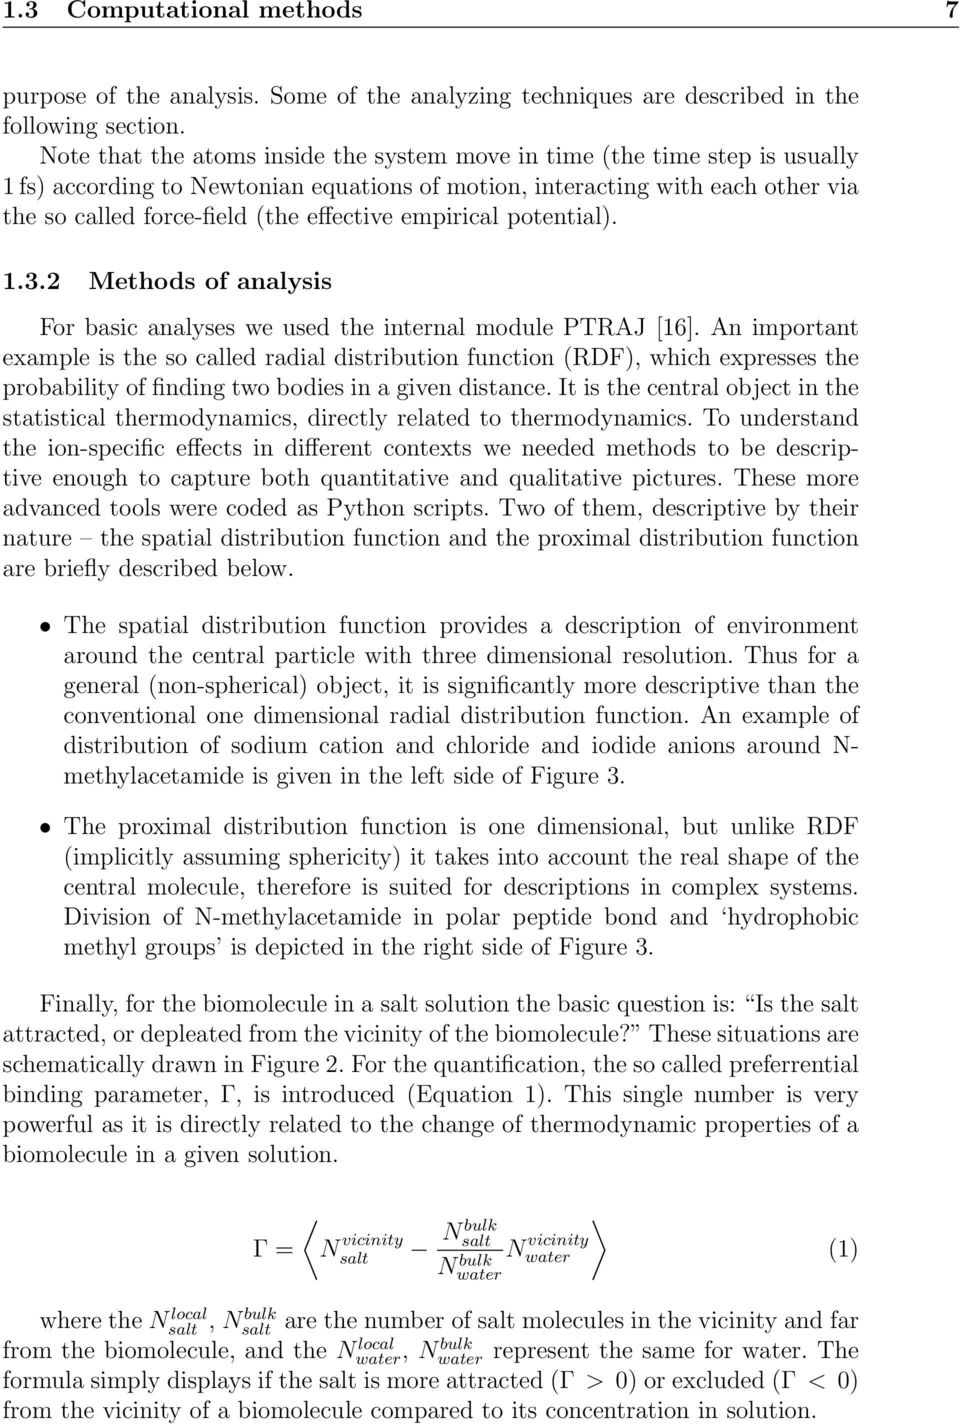 empirical potential). 1.3.2 Methods of analysis For basic analyses we used the internal module PTRAJ [16].